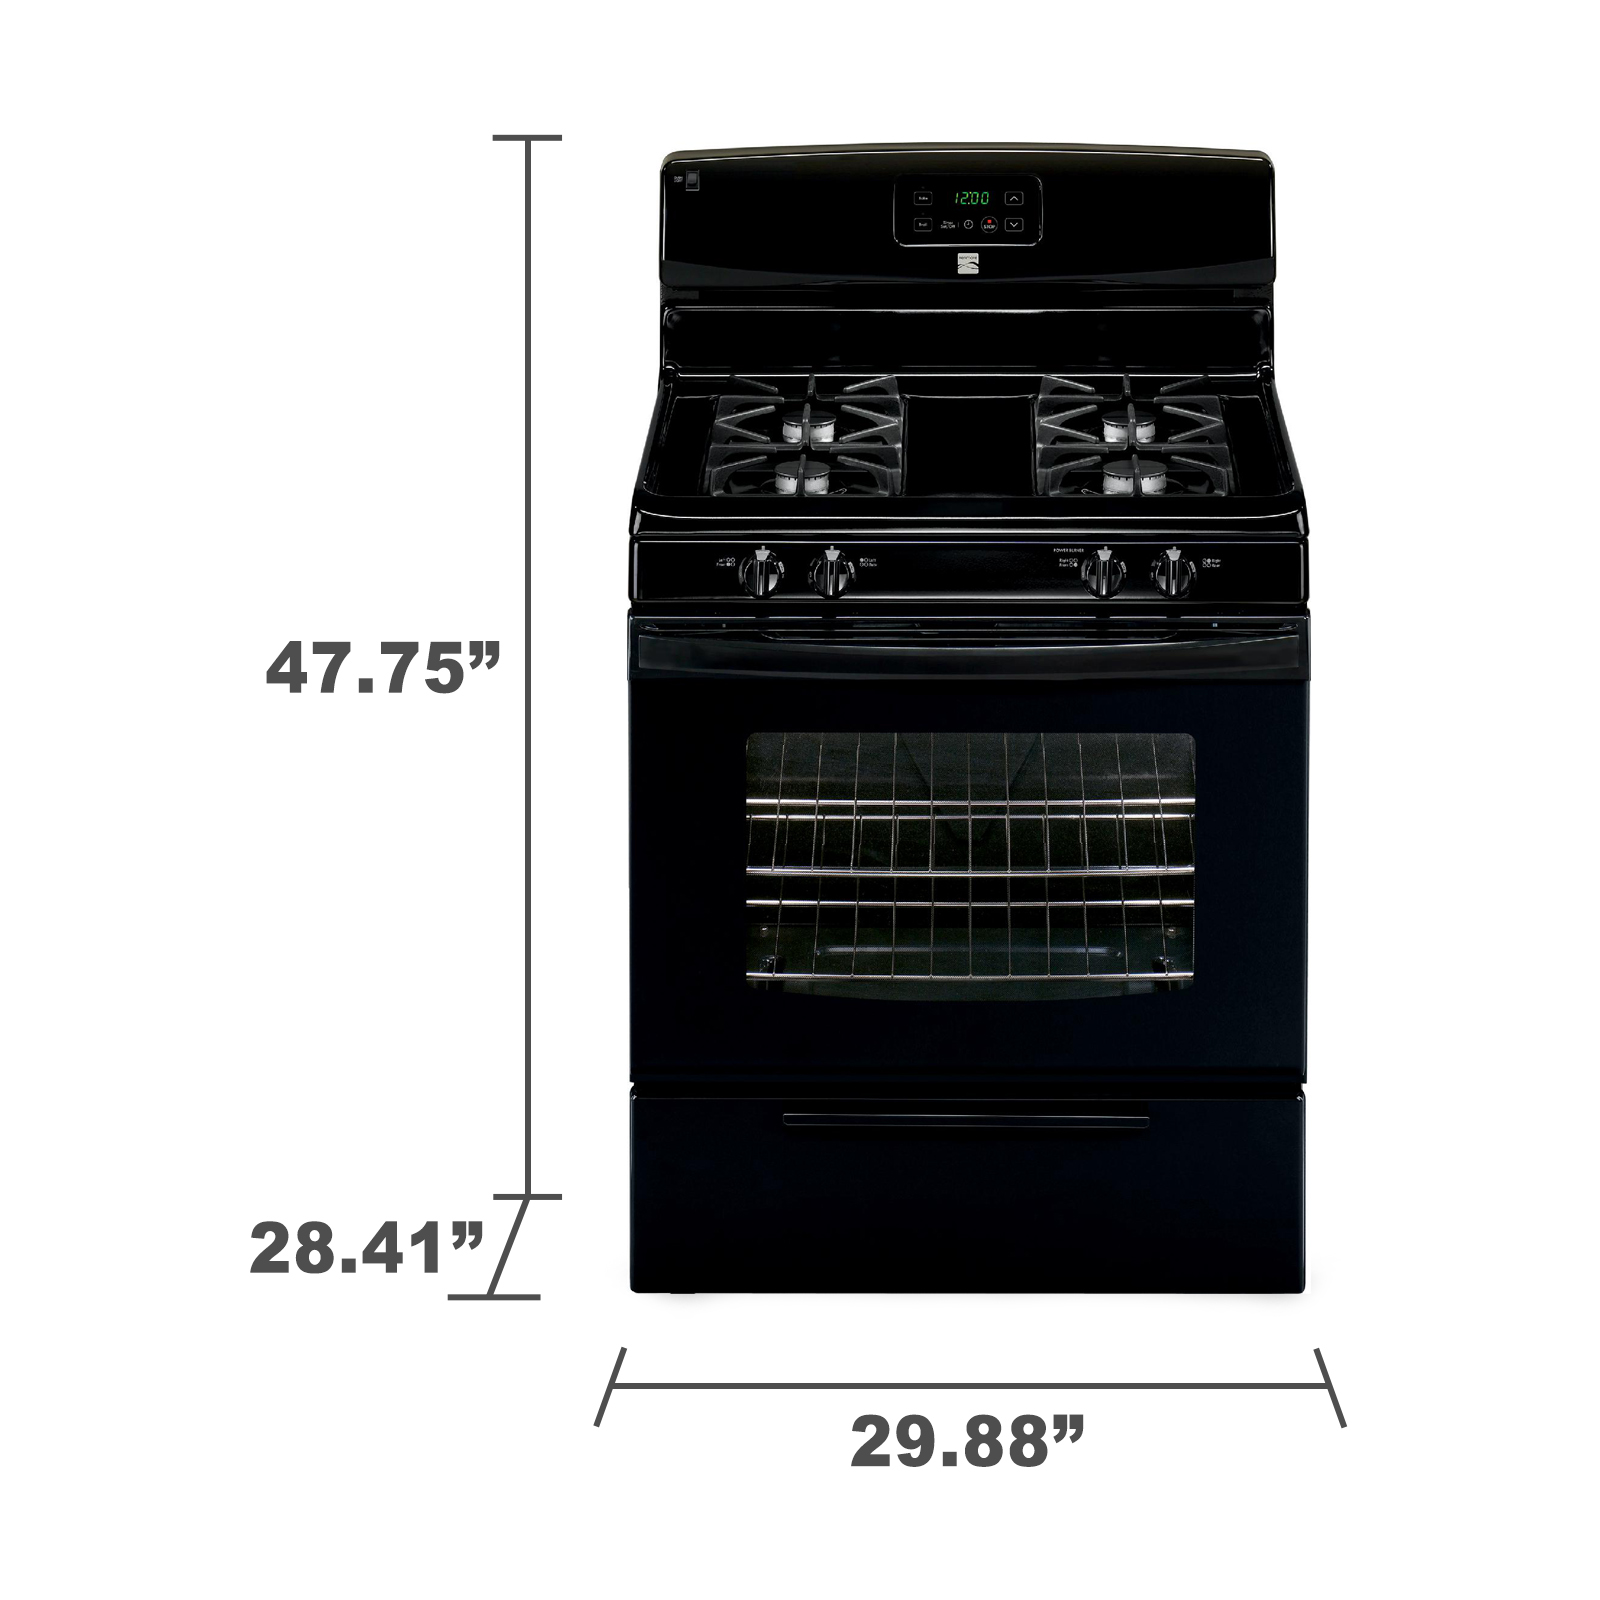 Kenmore 73239 4.2 cu. ft. Gas Range w/ Broil & Serve Drawer Drawer - Black